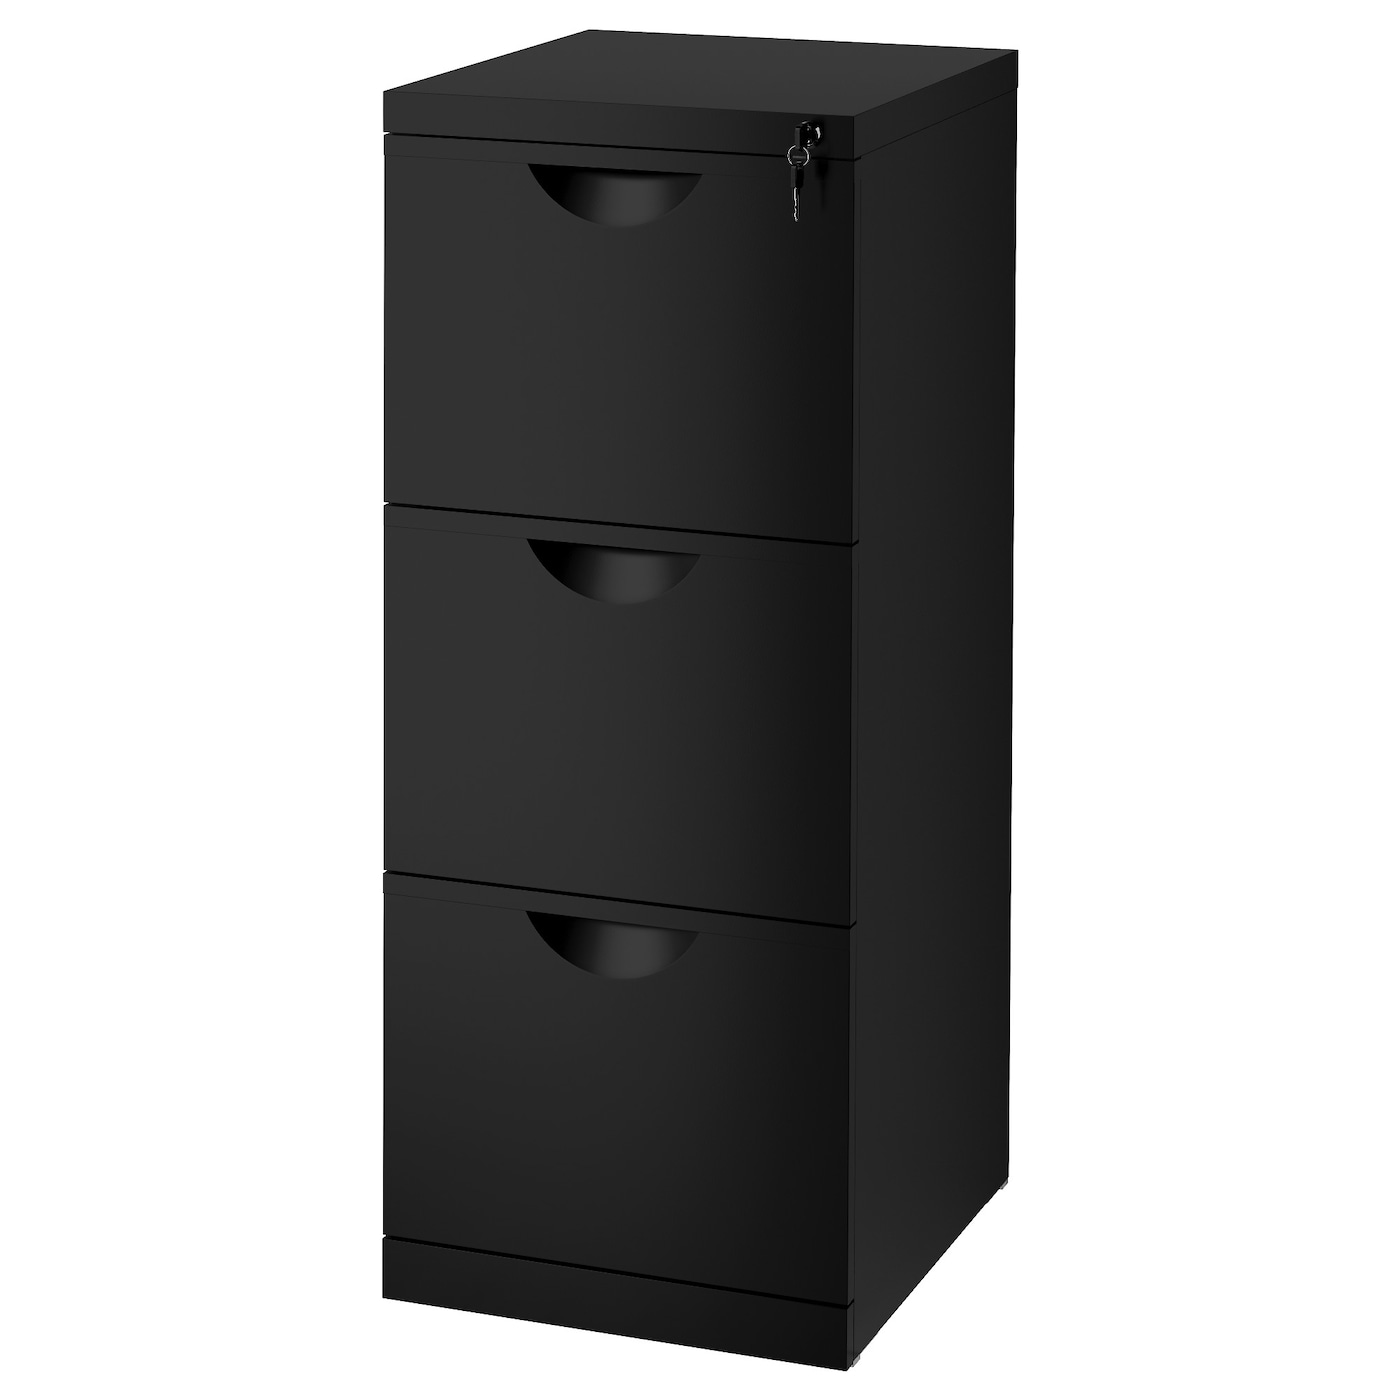 erik classeur dossiers noir 41x104 cm ikea. Black Bedroom Furniture Sets. Home Design Ideas